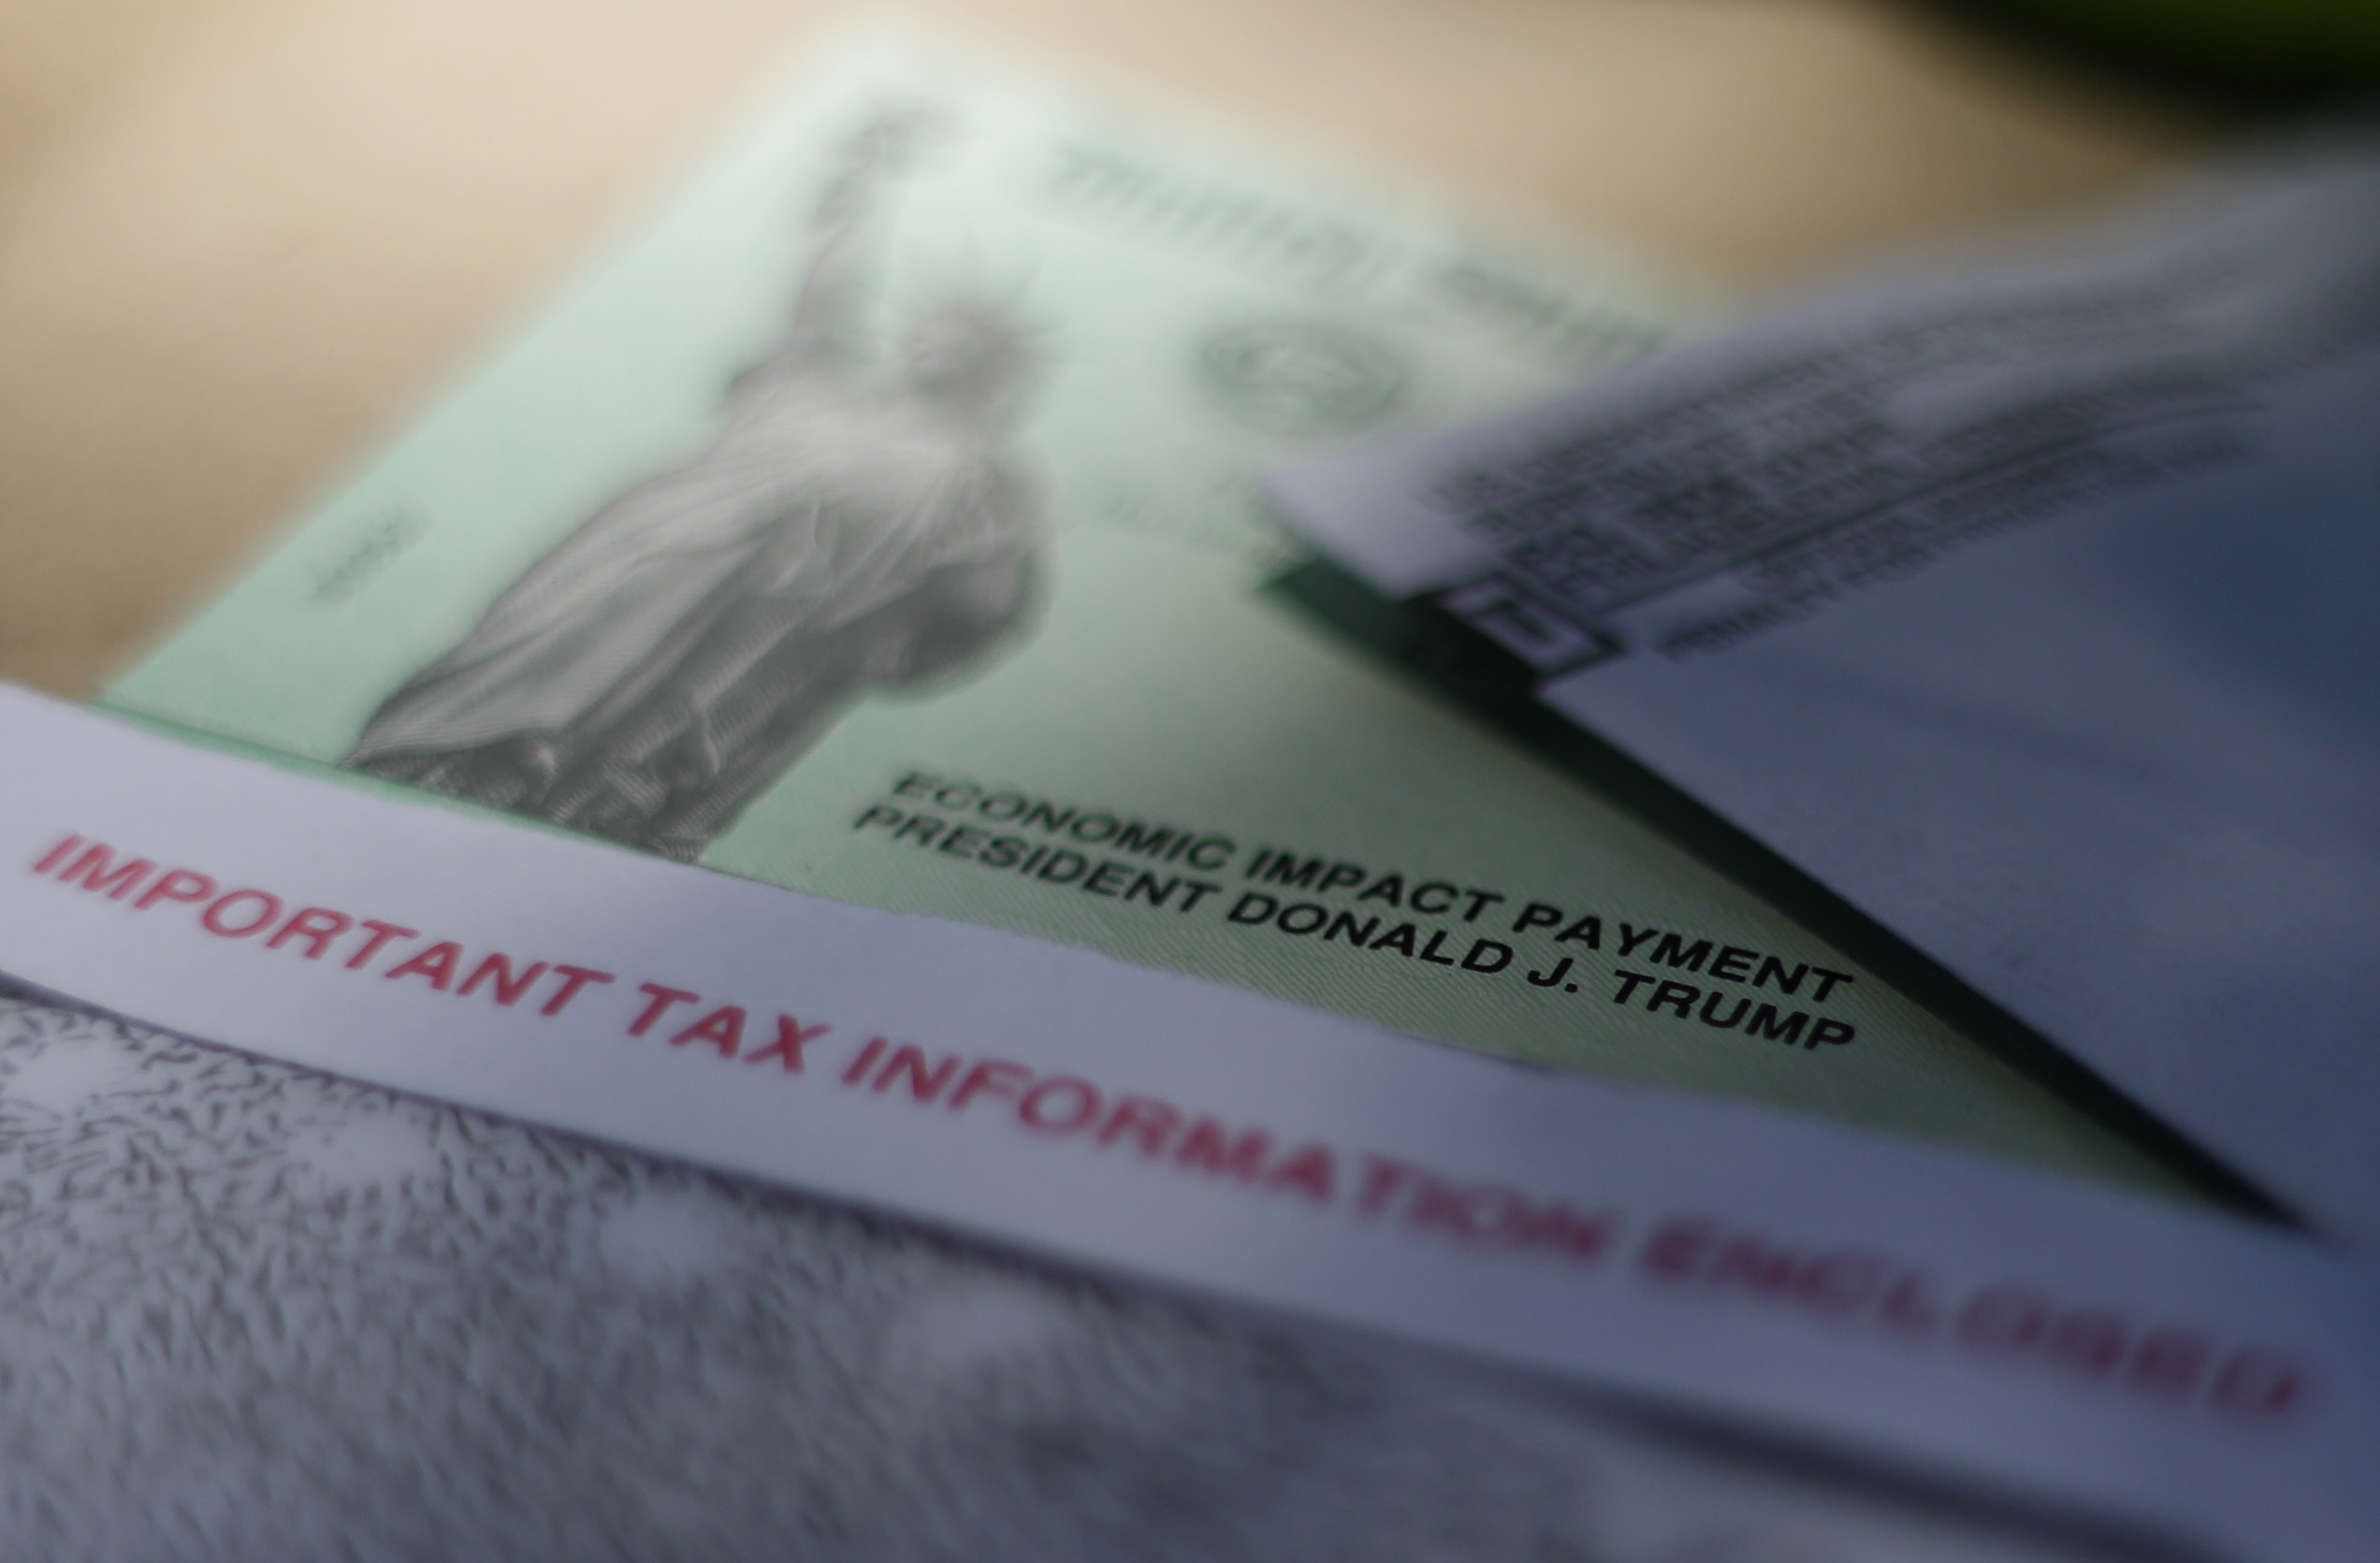 President Donald J.Trump's name is printed on a stimulus check issued by the IRS to help combat the adverse economic effects of the COVID-19 outbreak.